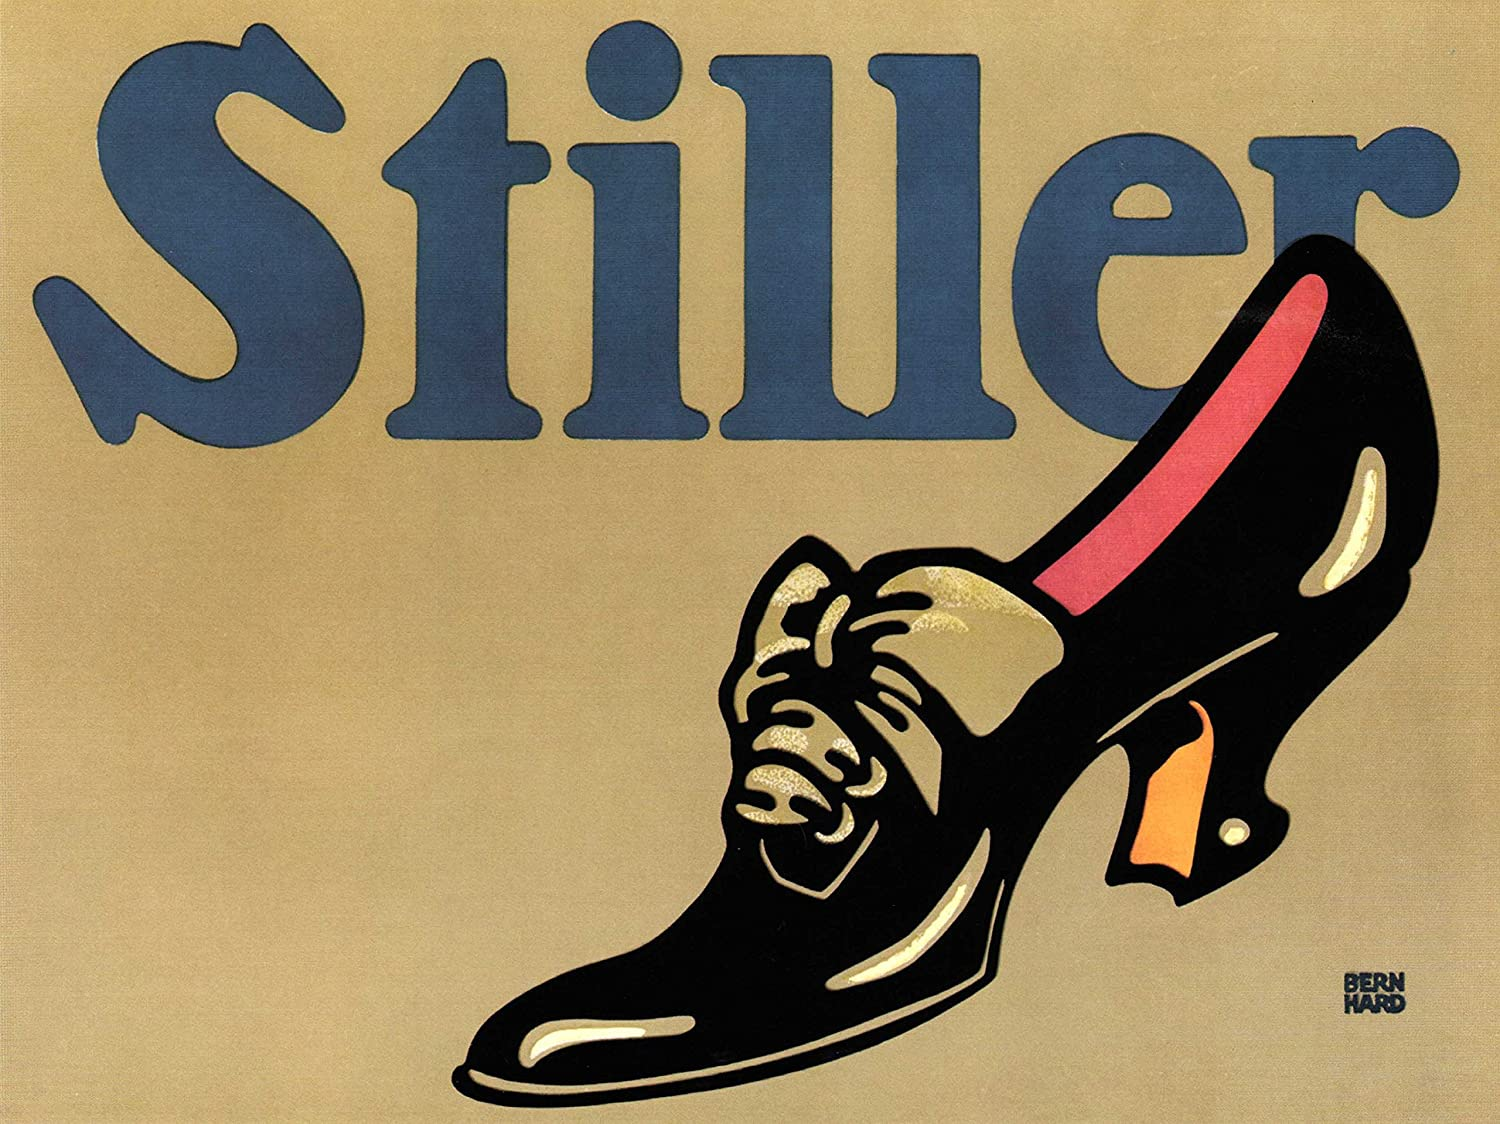 Stiller Shoe Germany Vintage Advertising Retro Wall Art Poster Print:  Amazon.co.uk: Kitchen & Home